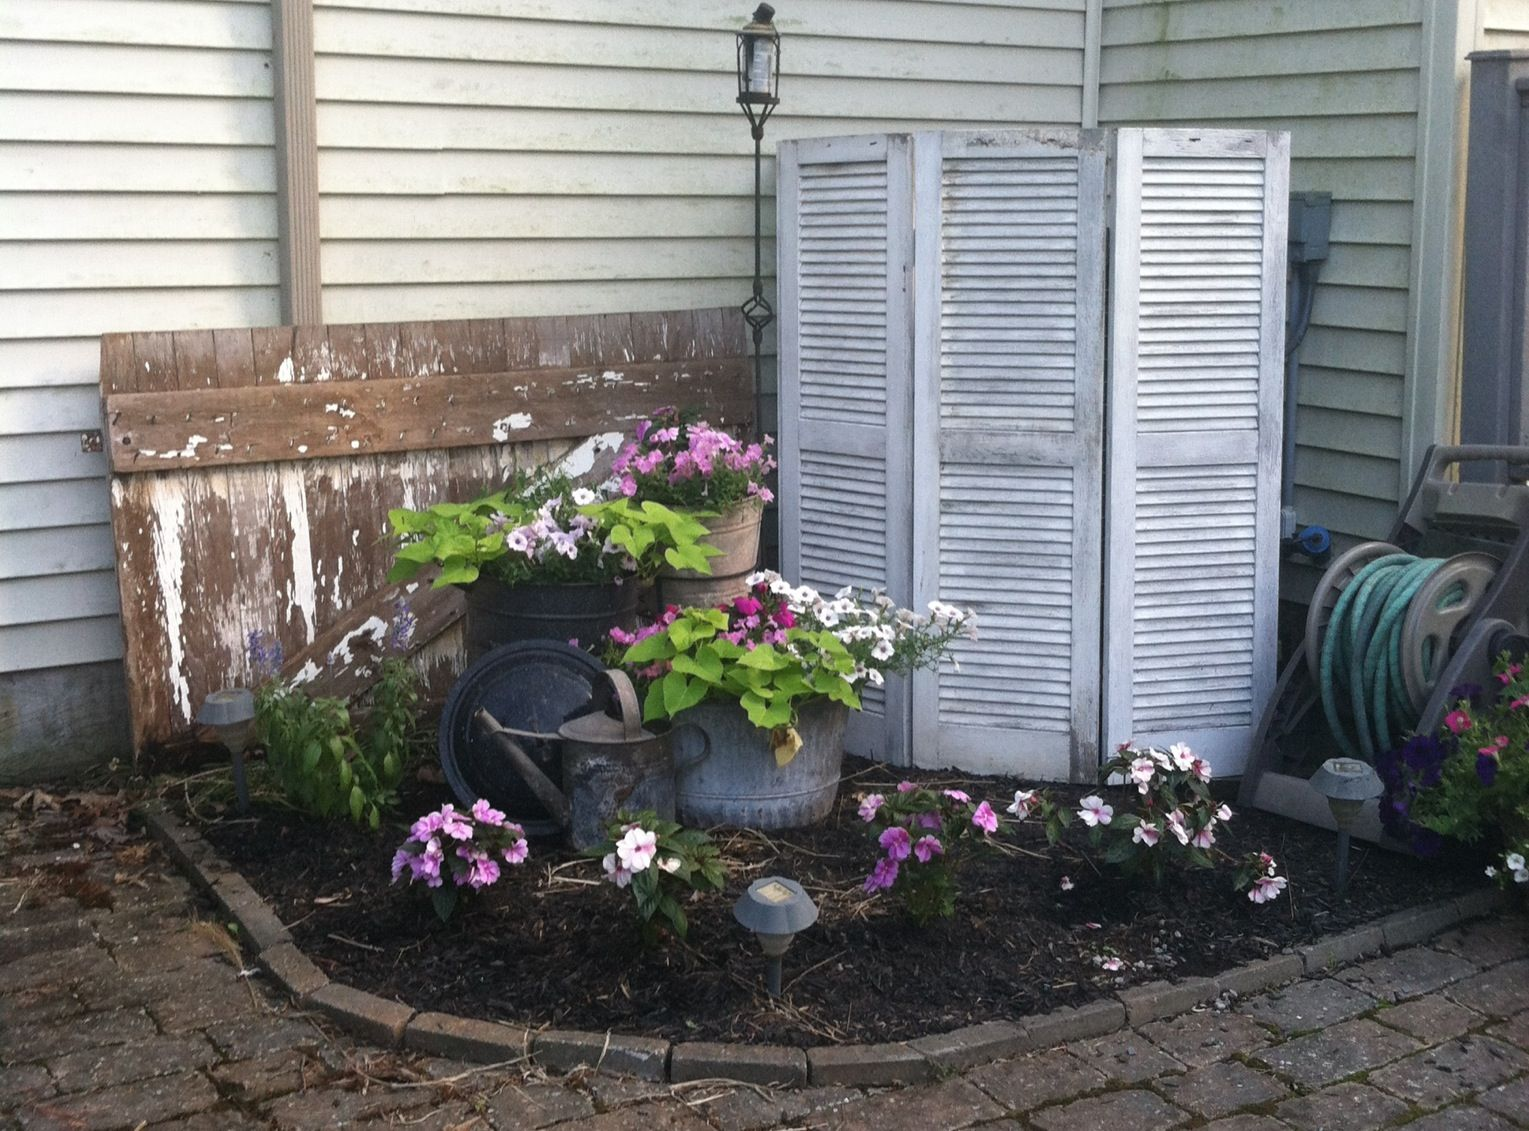 Old Shutters To Hide Air Conditioning Unit Vertical Garden